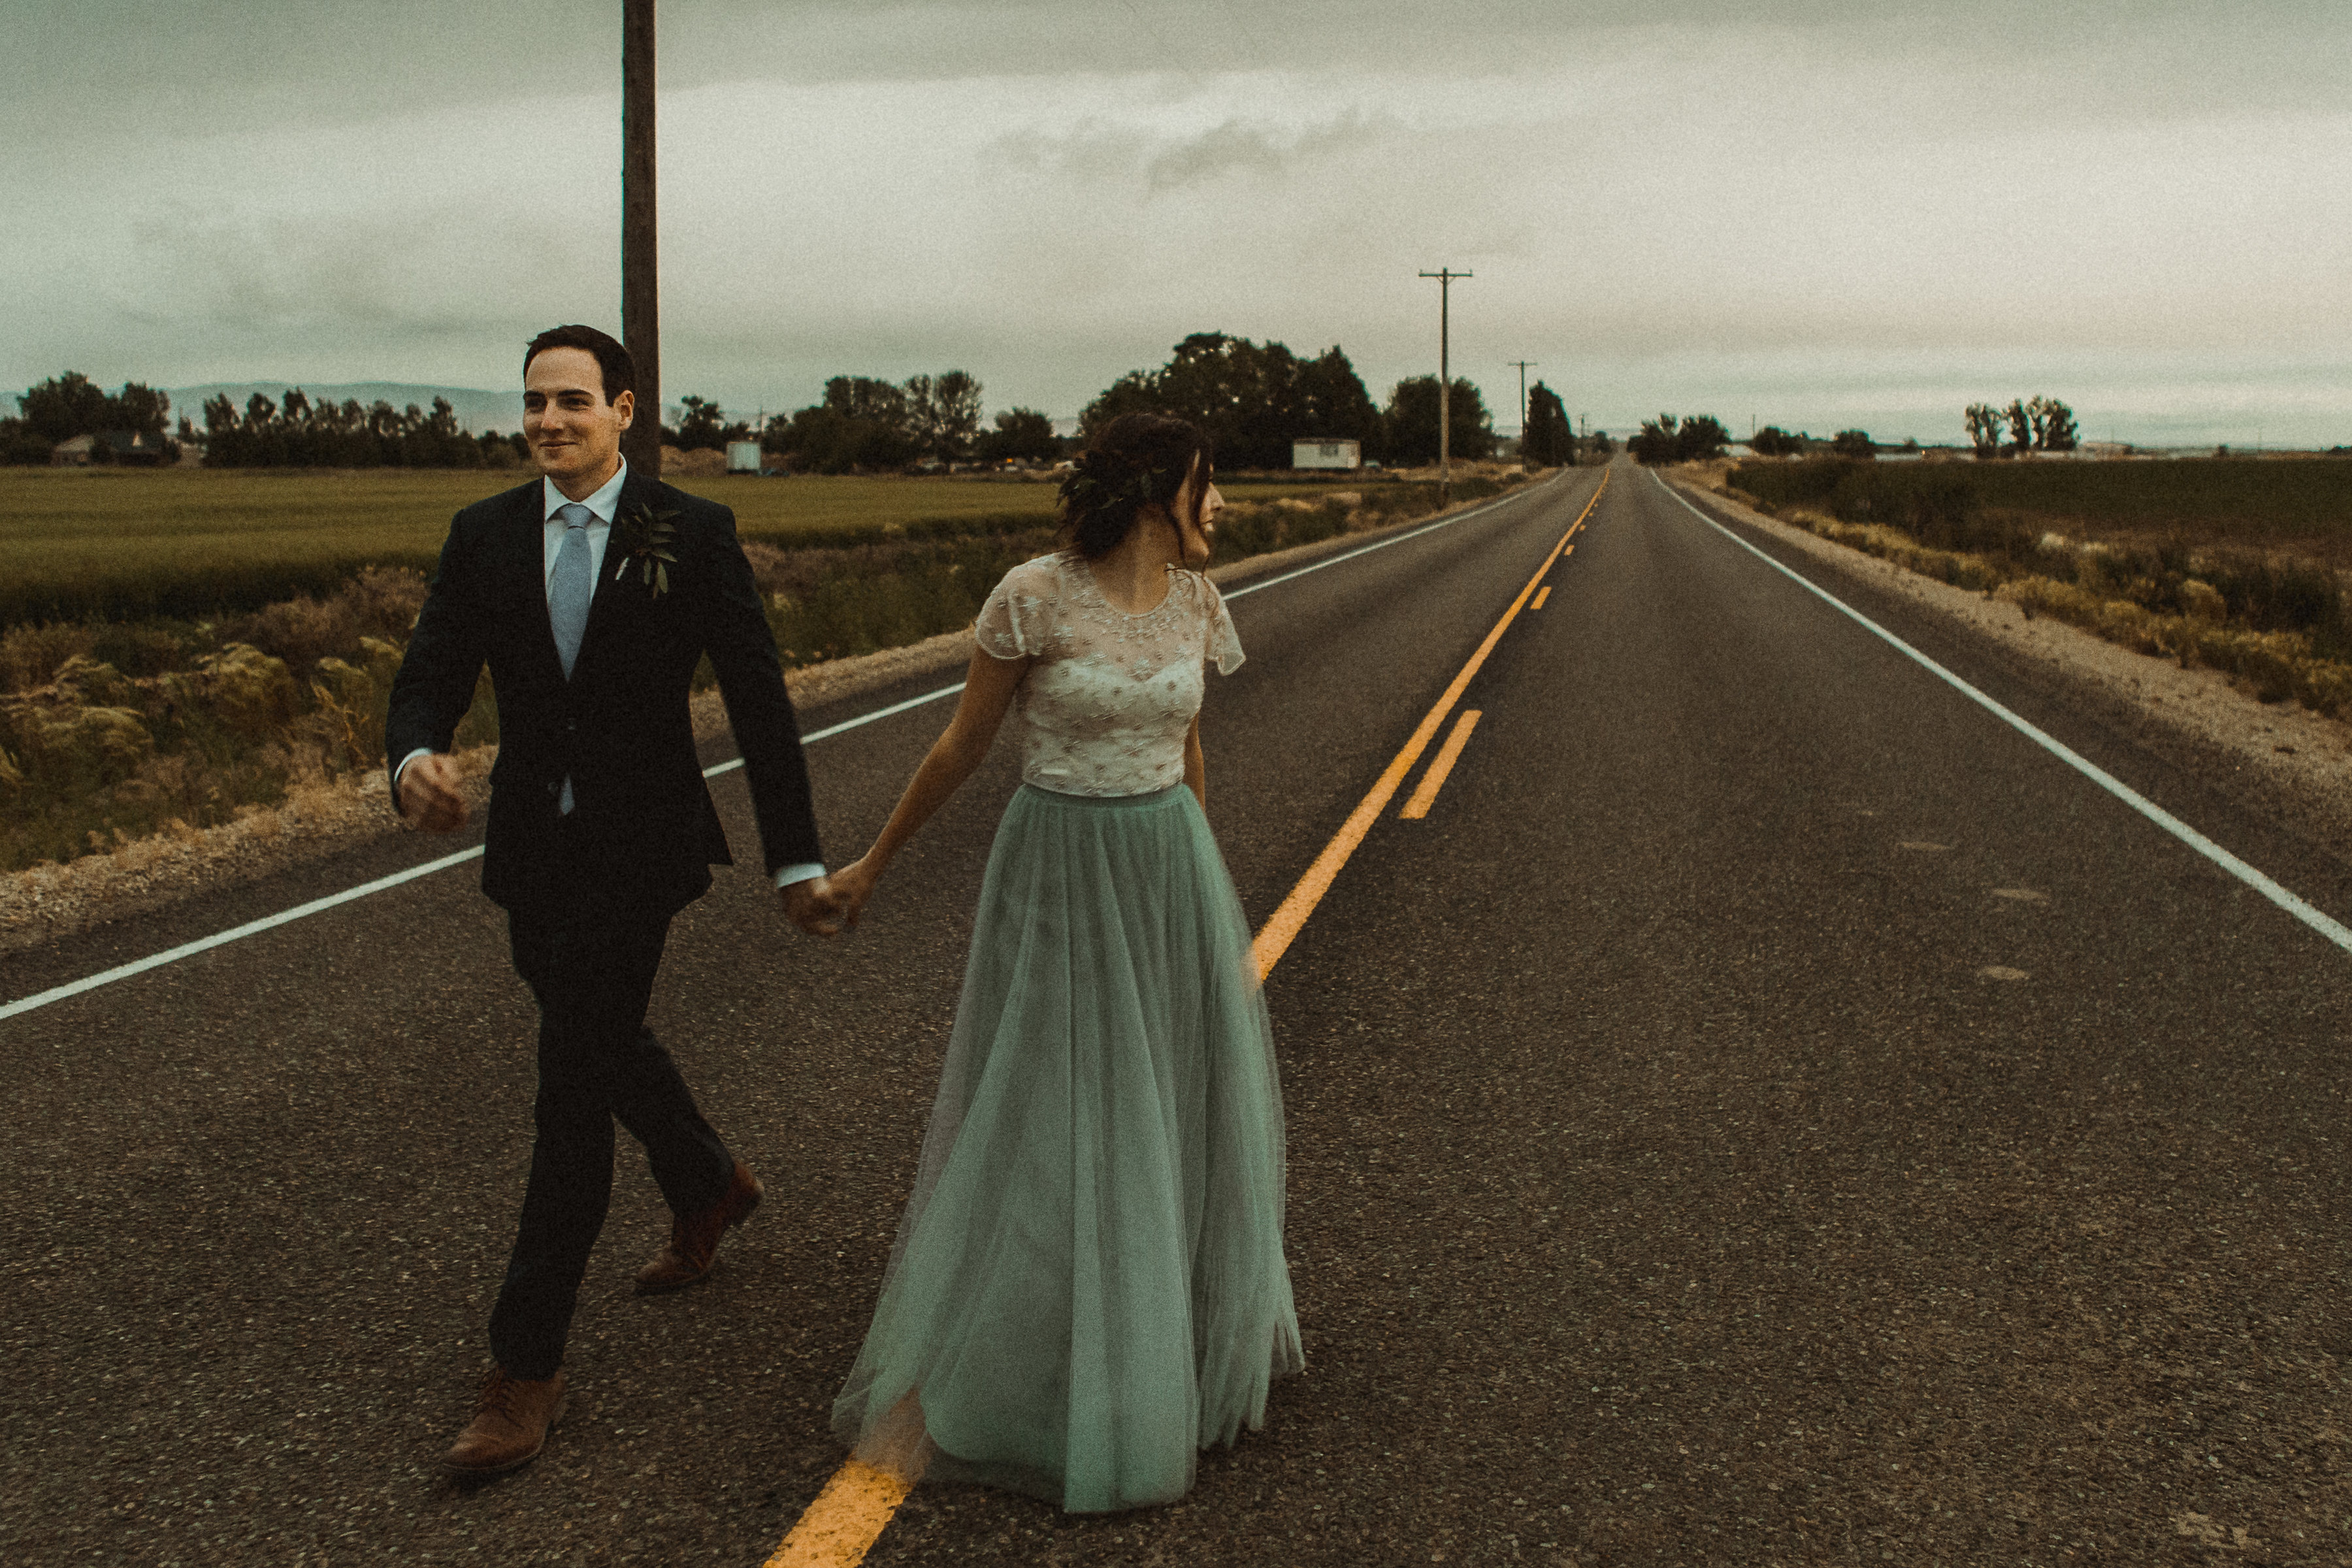 Bride in blue tulle skirt and groom take walk into sunset for photos